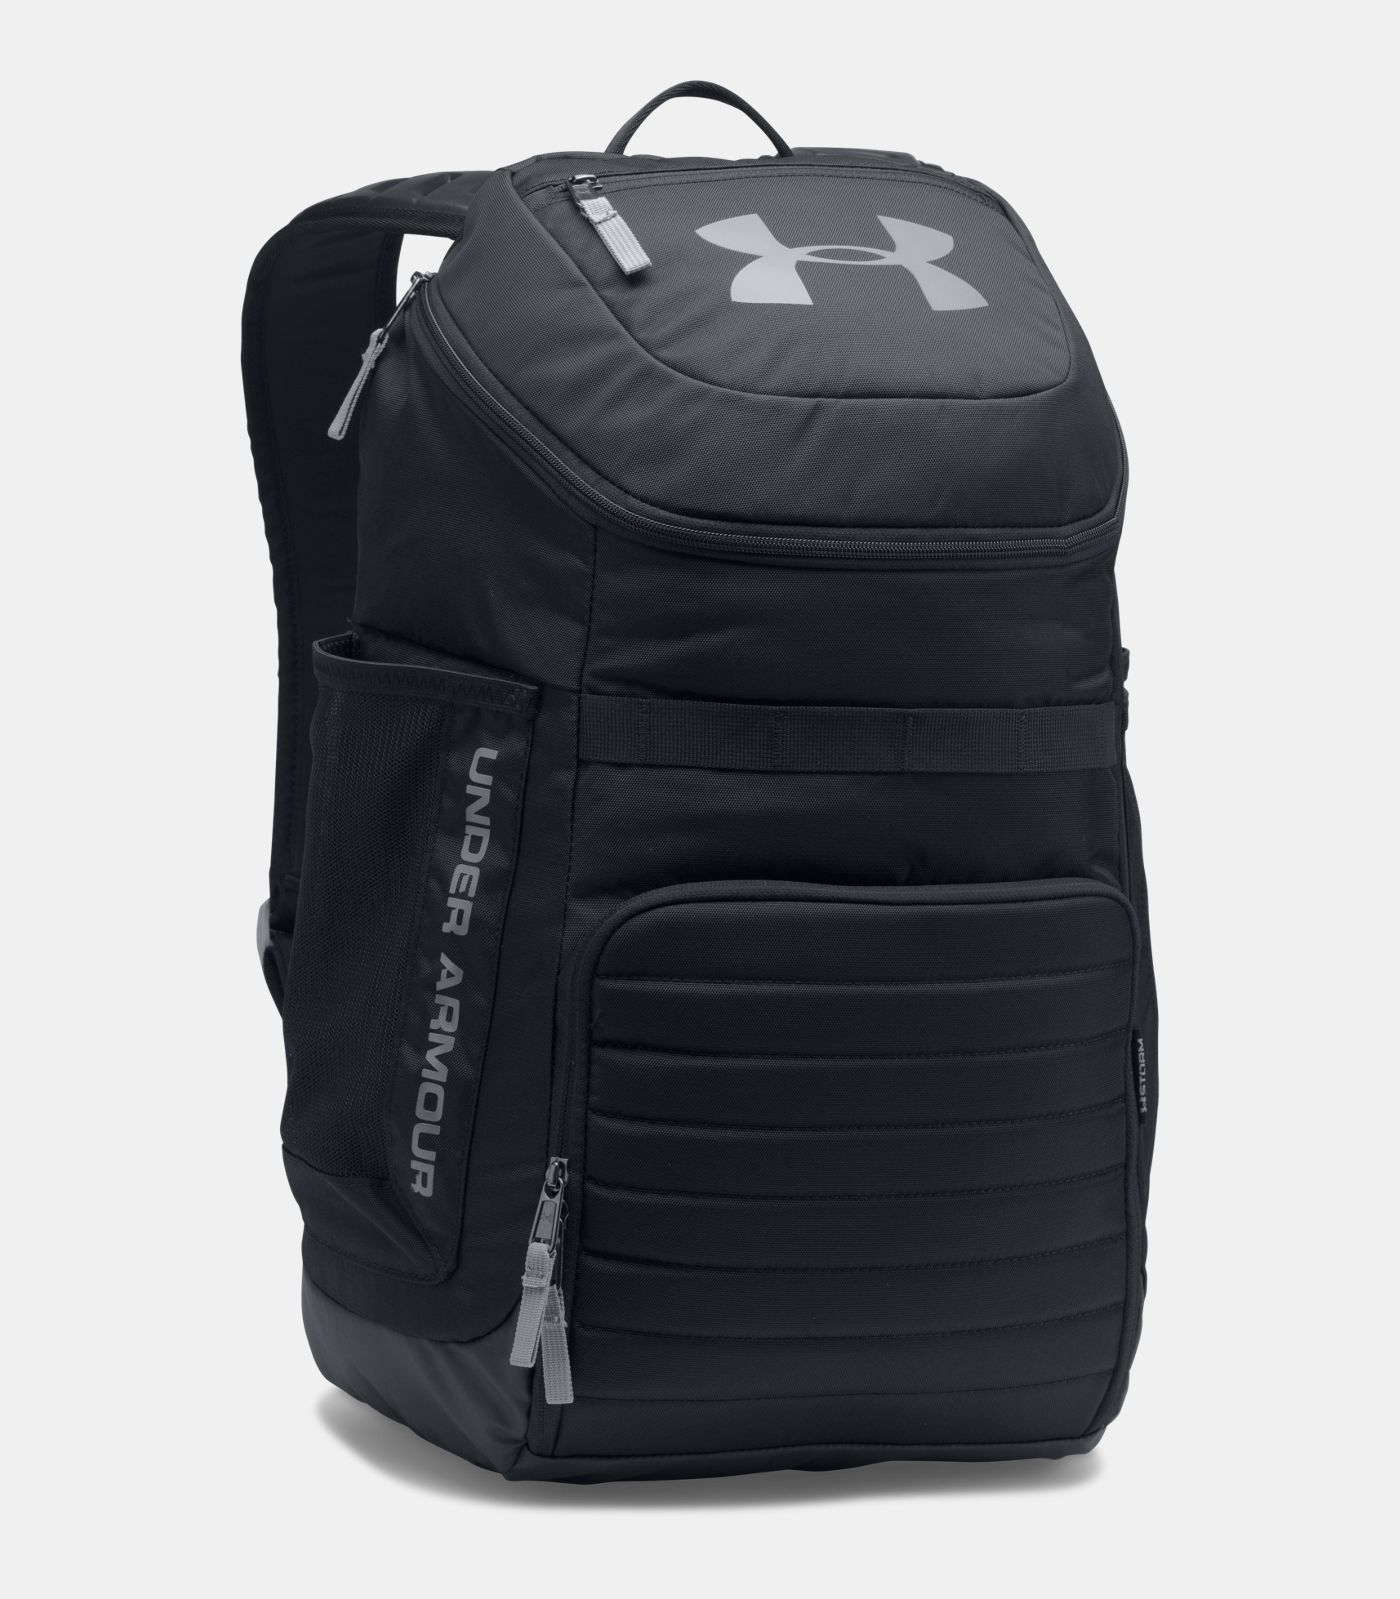 20b711d9616 Under Armour Undeniable 3.0 Large Unisex Backpack, 3 Colors NEW | eBay